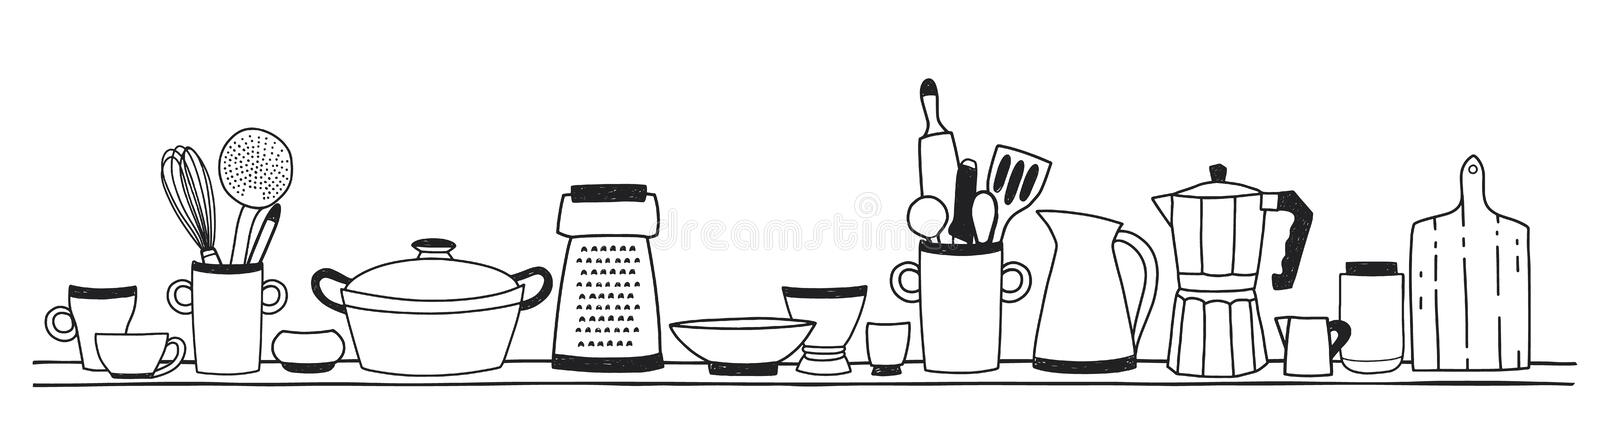 Home kitchen utensils for cooking, tools for food preparation or cookware standing on shelf hand drawn with black stock illustration